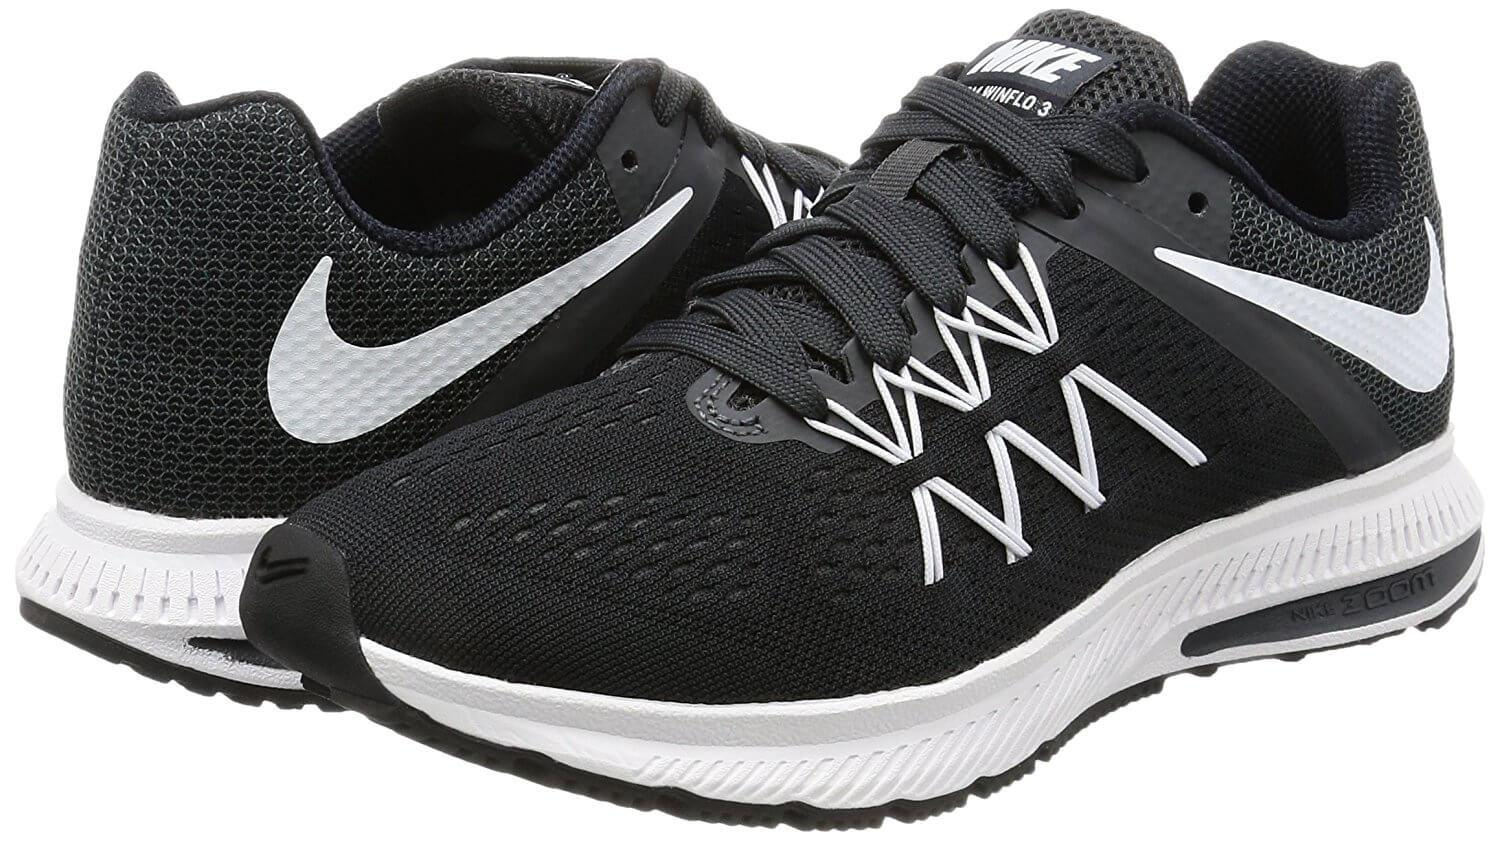 f5dba025ae9 Nike Air Zoom Winflo 3 Review - Buy or Not in May 2019